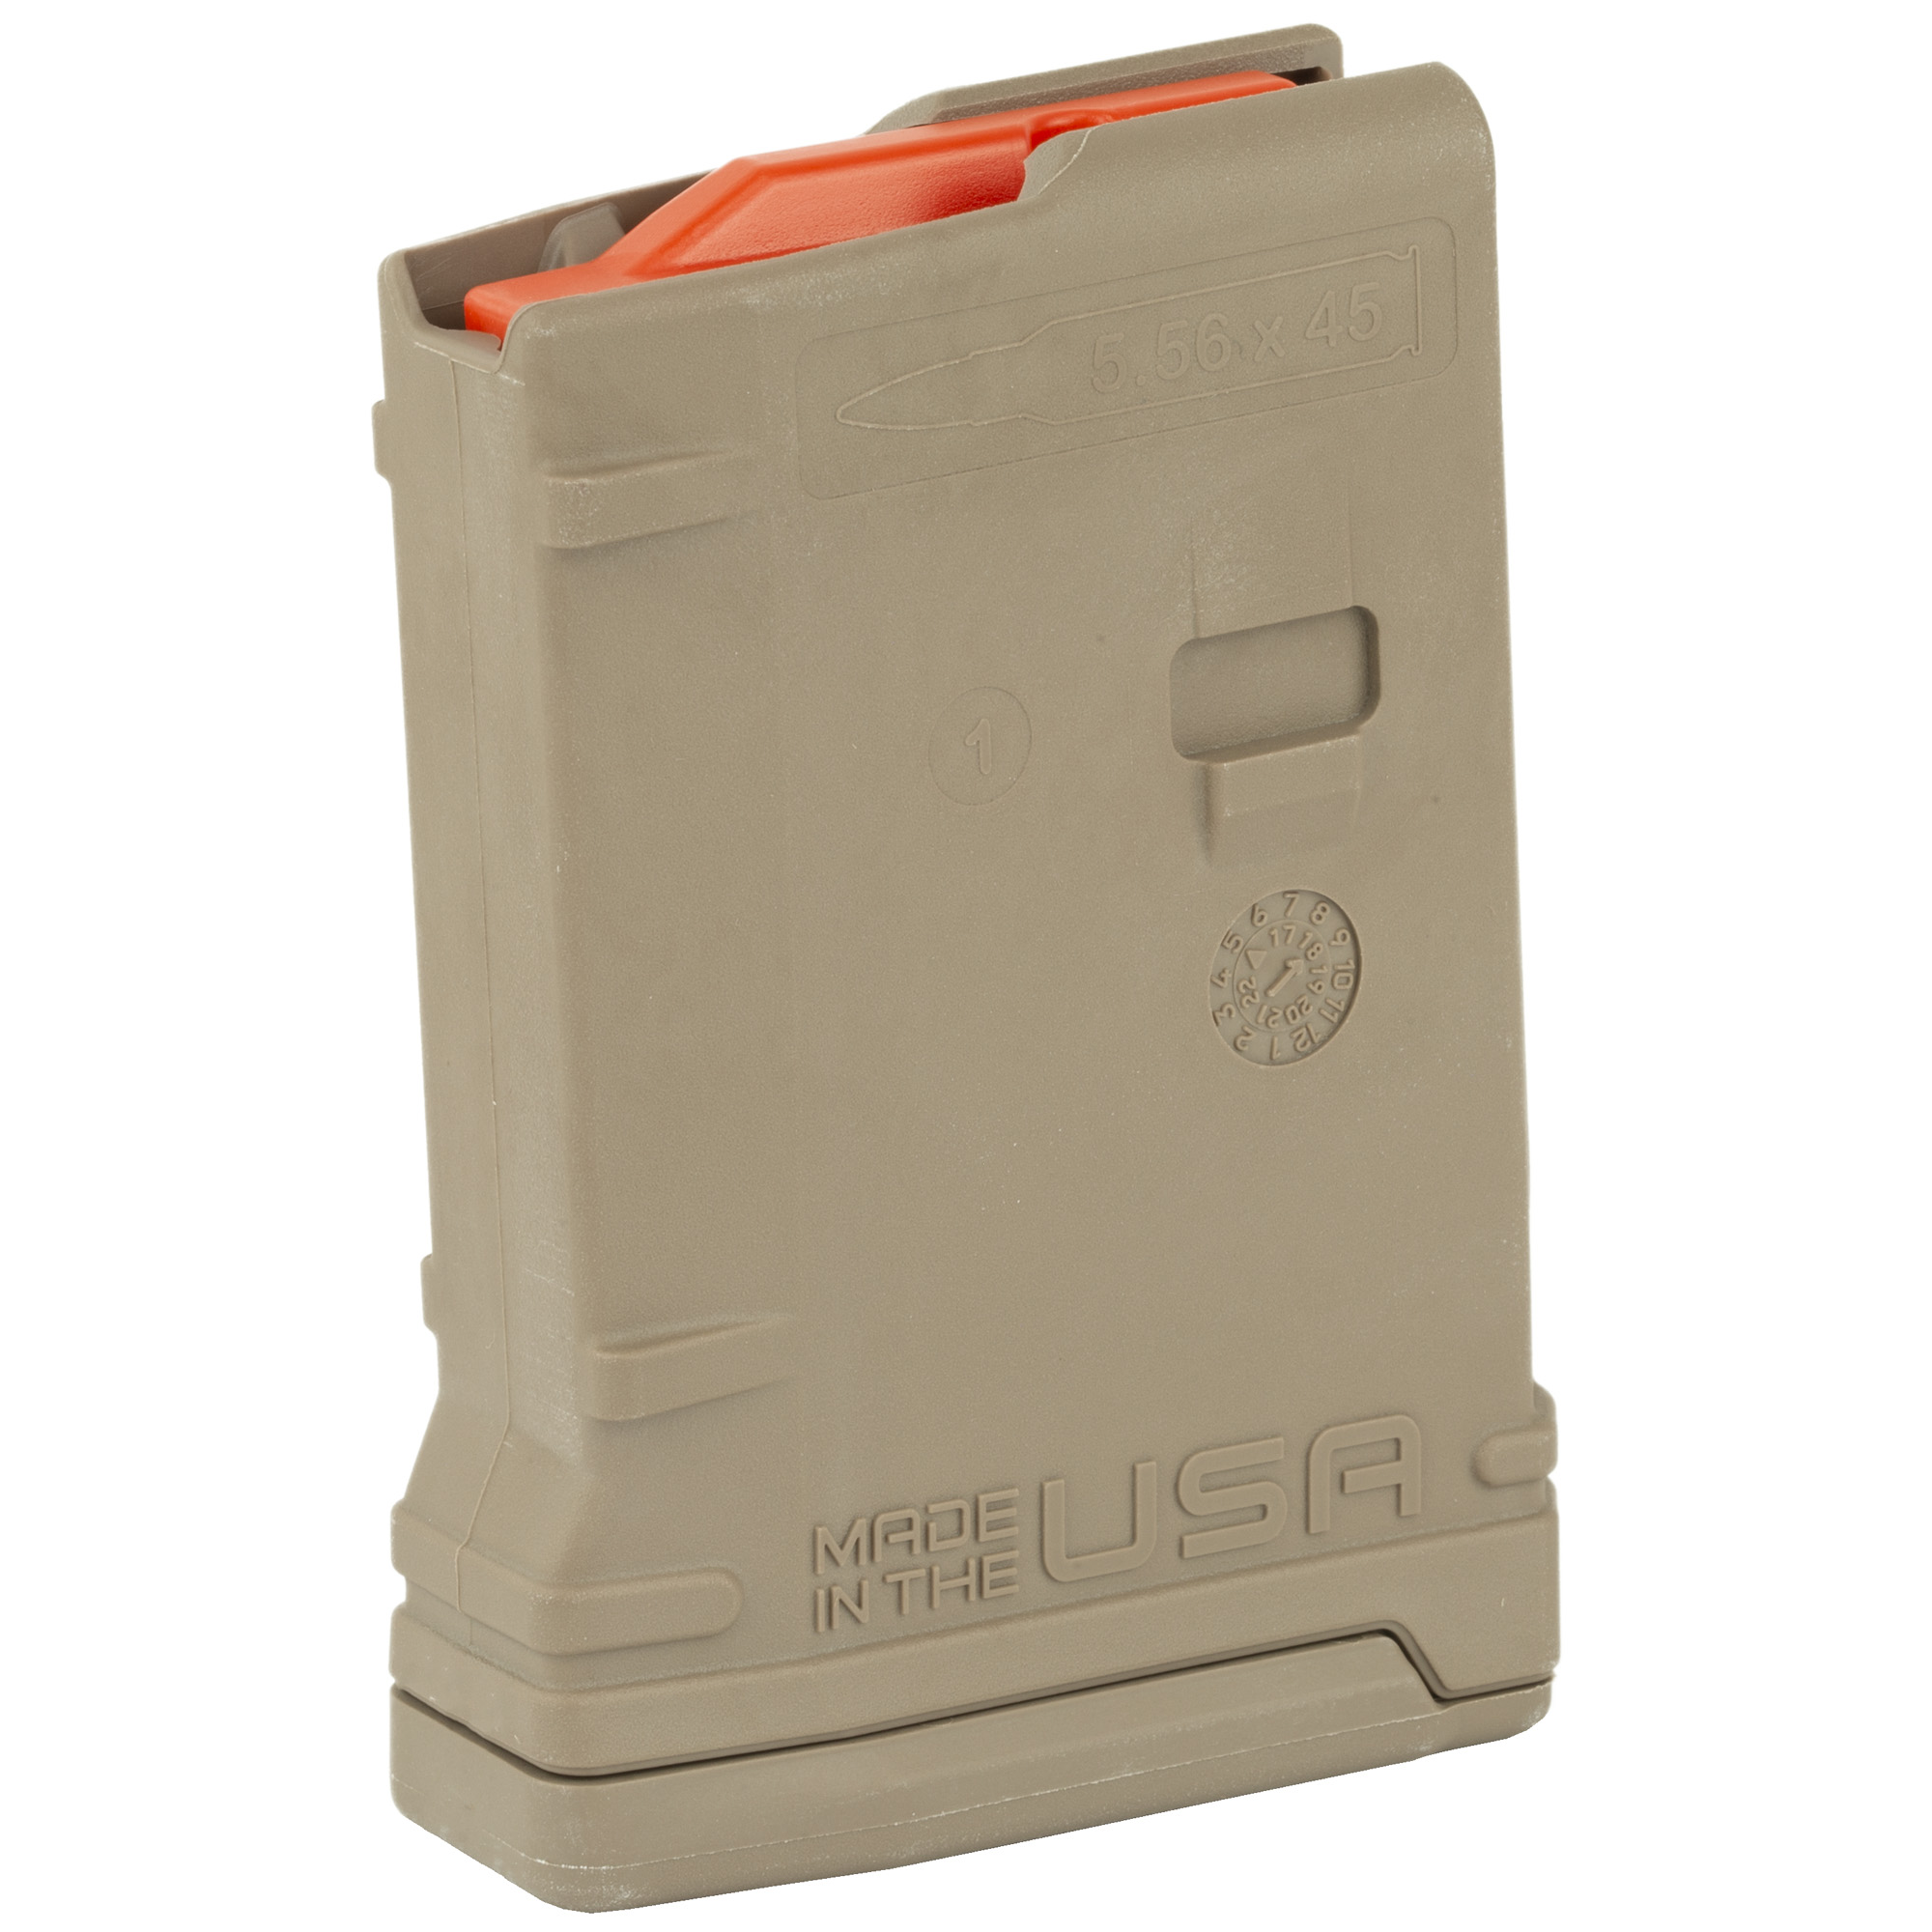 """The Amend2 10-round magazine is a sturdy"""" reliable AR15/M4/M16 magazine made of advanced polymer material. It is light"""" durable and an excellent alternative to the standard M4/M16 USGI aluminum magazines. The 10 round body profile is ideal for hunting"""" bench shooting or the various states where capacities are limited by law."""